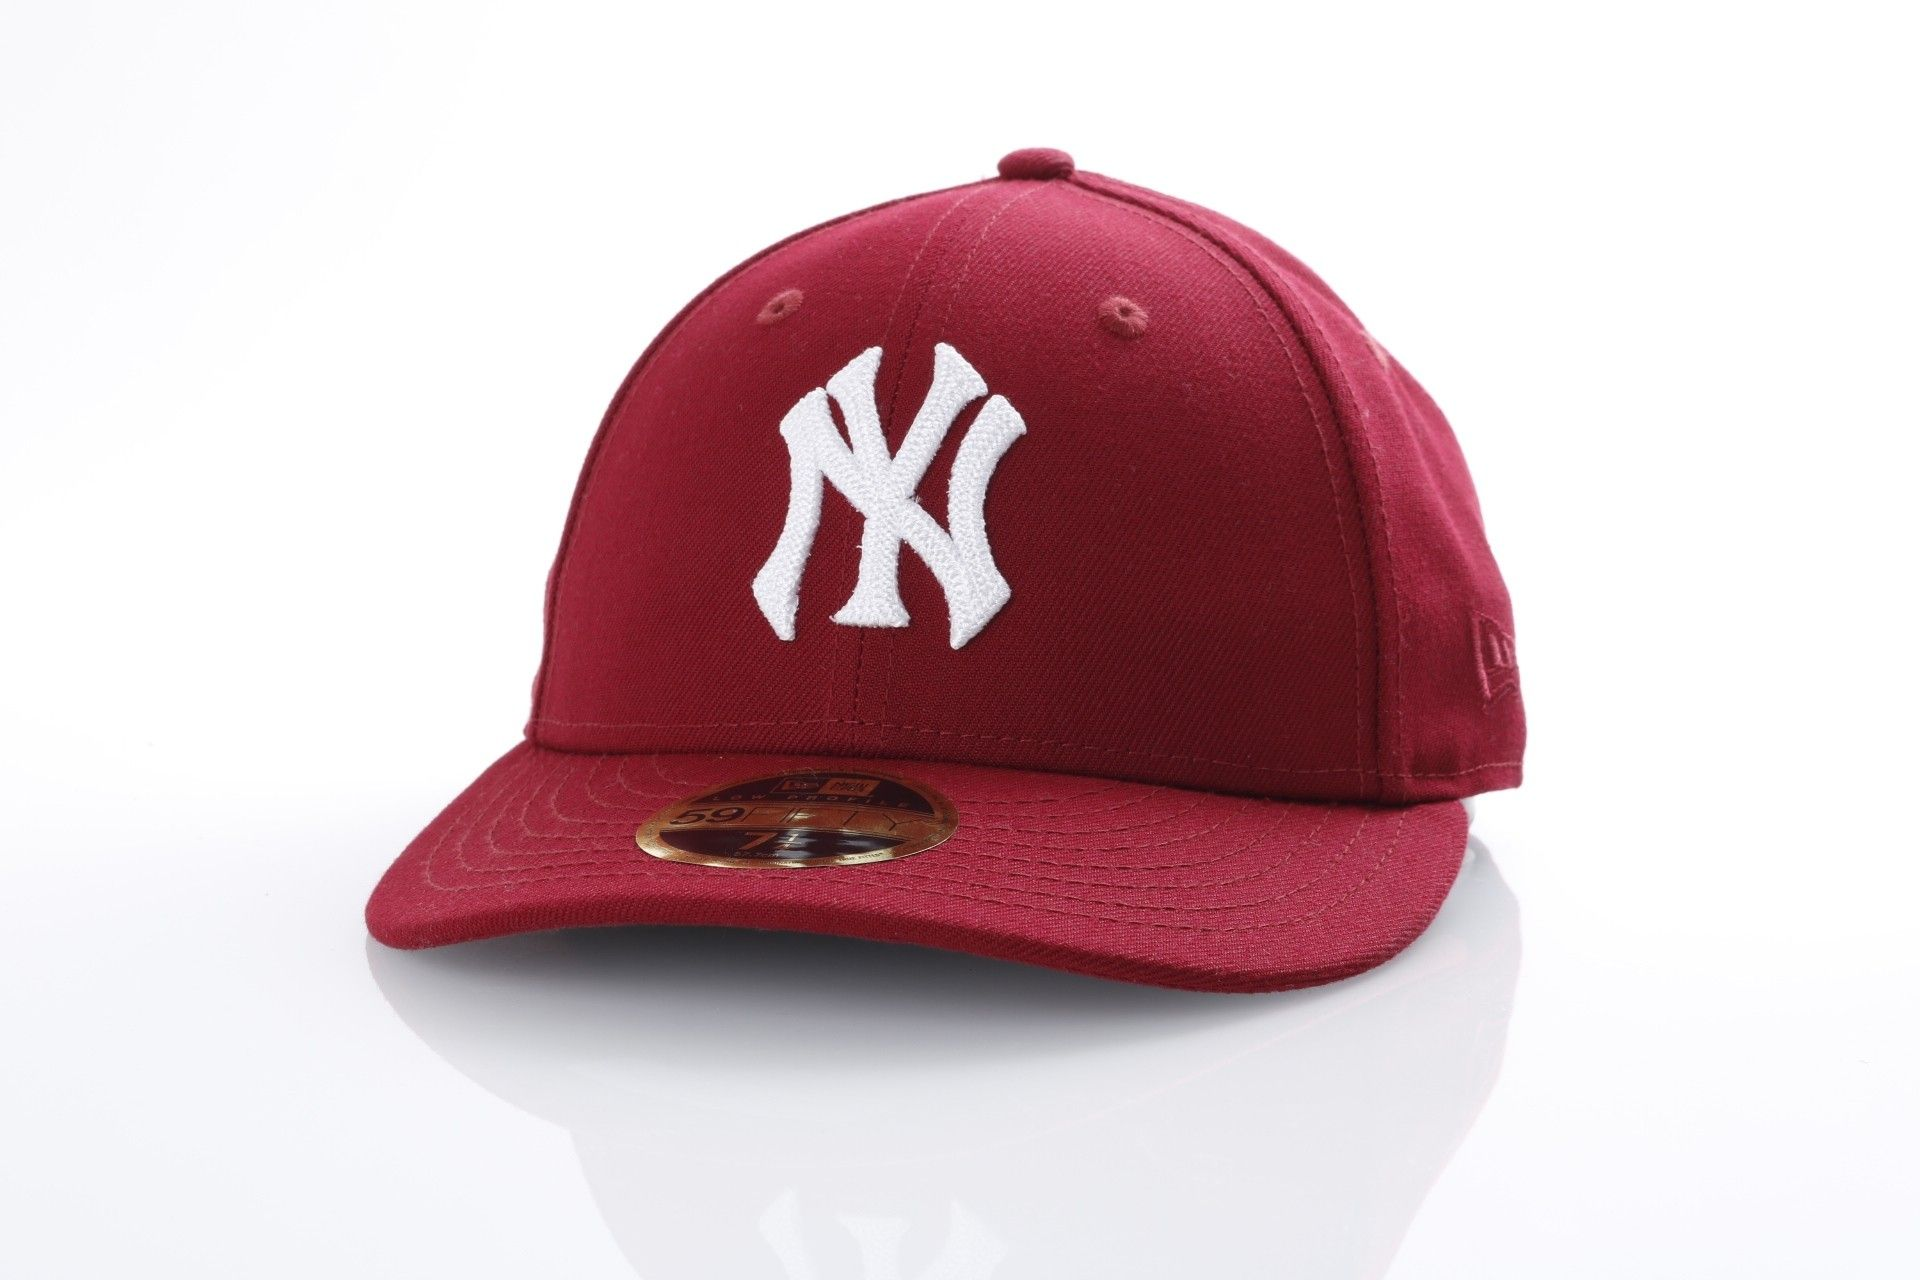 Afbeelding van New Era Fitted Cap New York Yankees MLB chain lp5950 NY Yankees 80536502